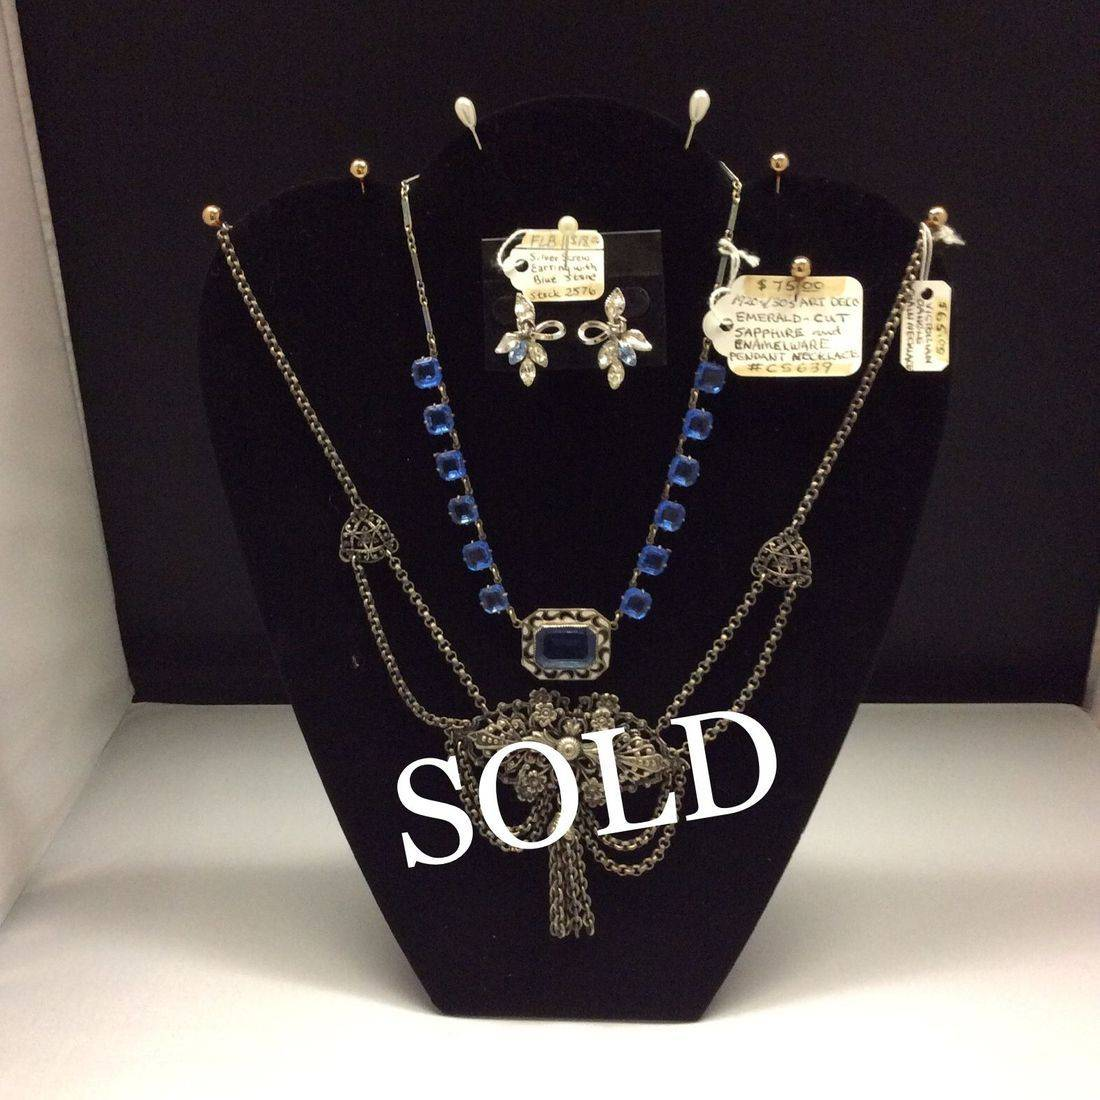 Vin. Silver Earrings w/Blue stones  $18,  1920's/30's Deco, Sapphire Necklace  $75,  Victorian Dangle, Chain Necklace  'SOLD'